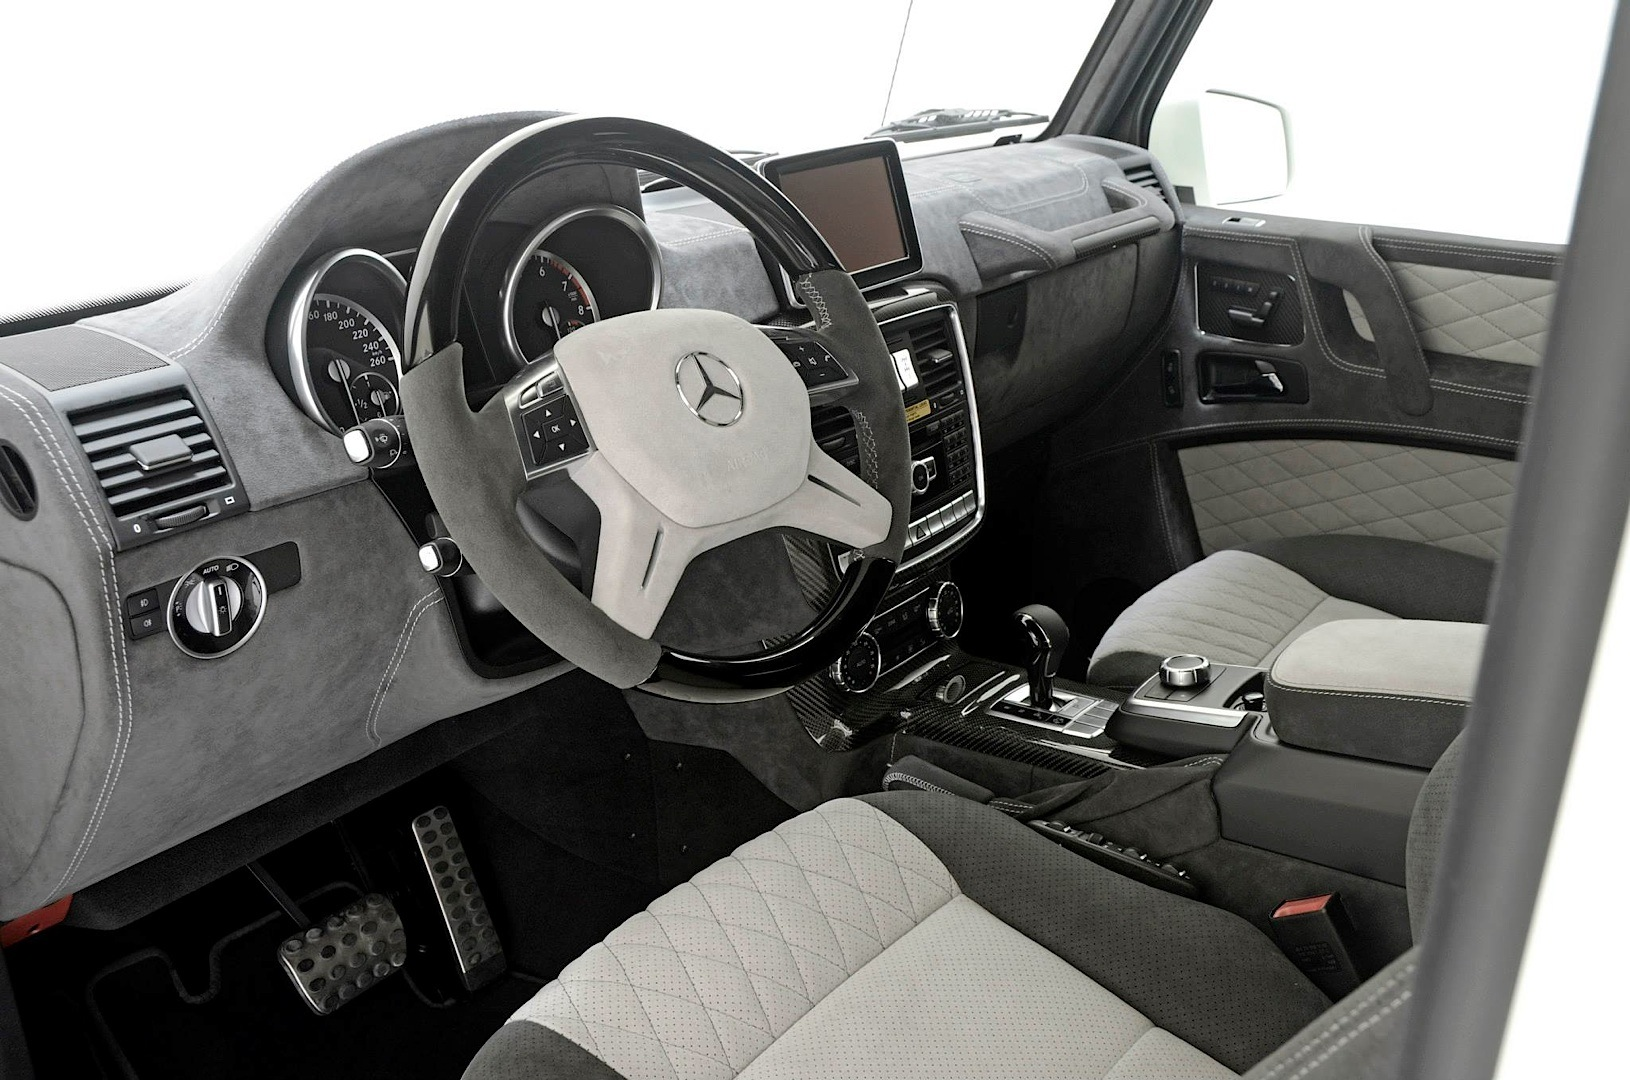 Photo Wallpaper Car Sound System Brabus Widestar Package For G500 Cabrio With Unreal